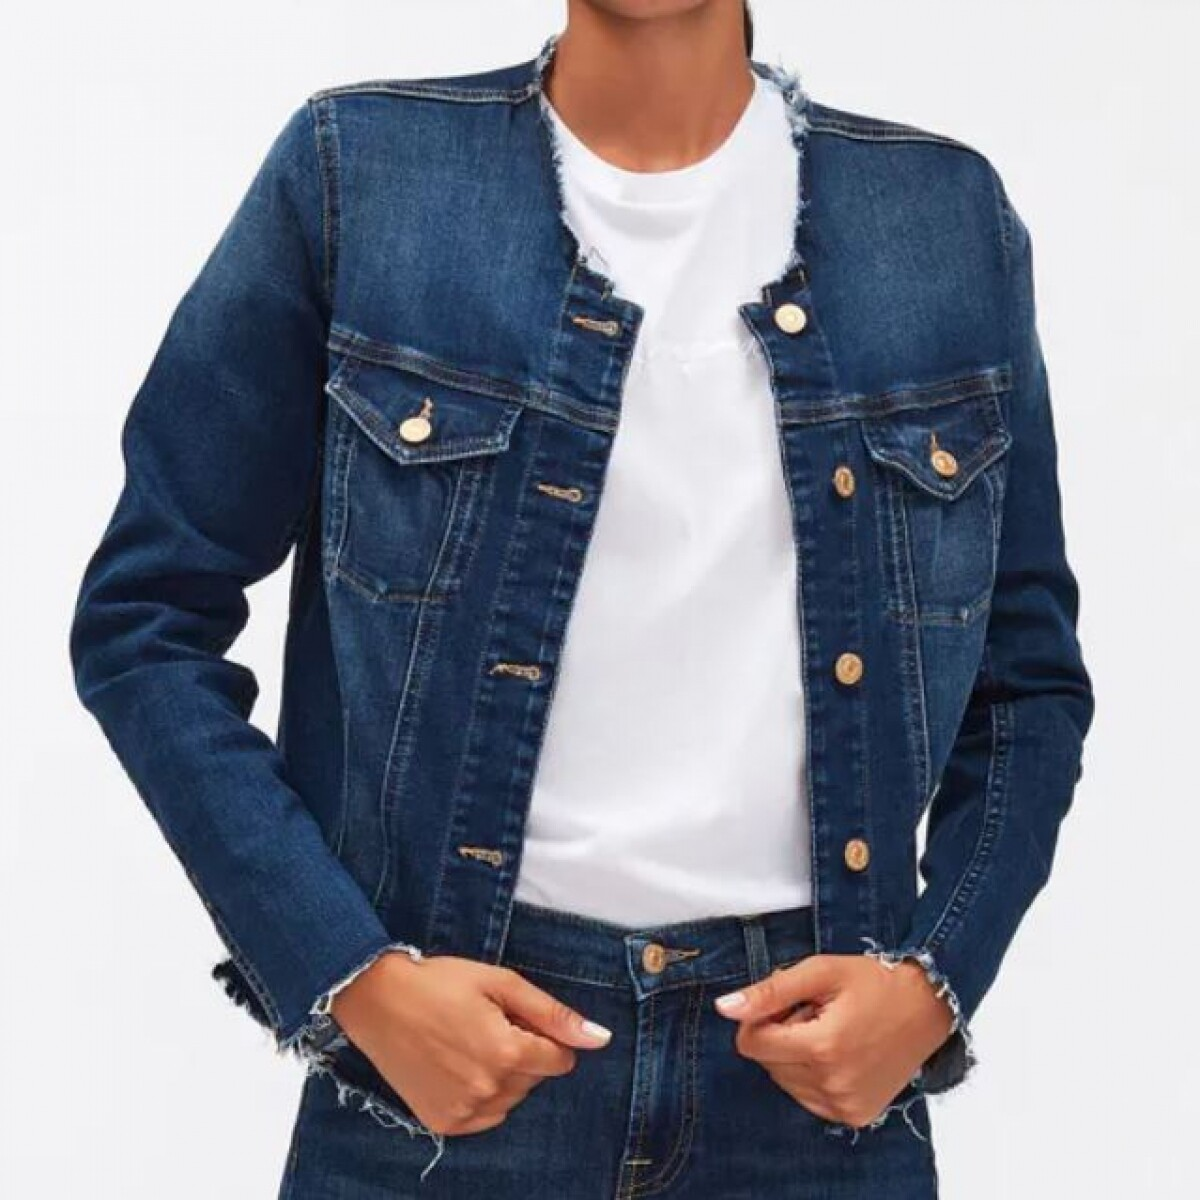 7For All Mankind | Jeans | JSWN8870DD jeans